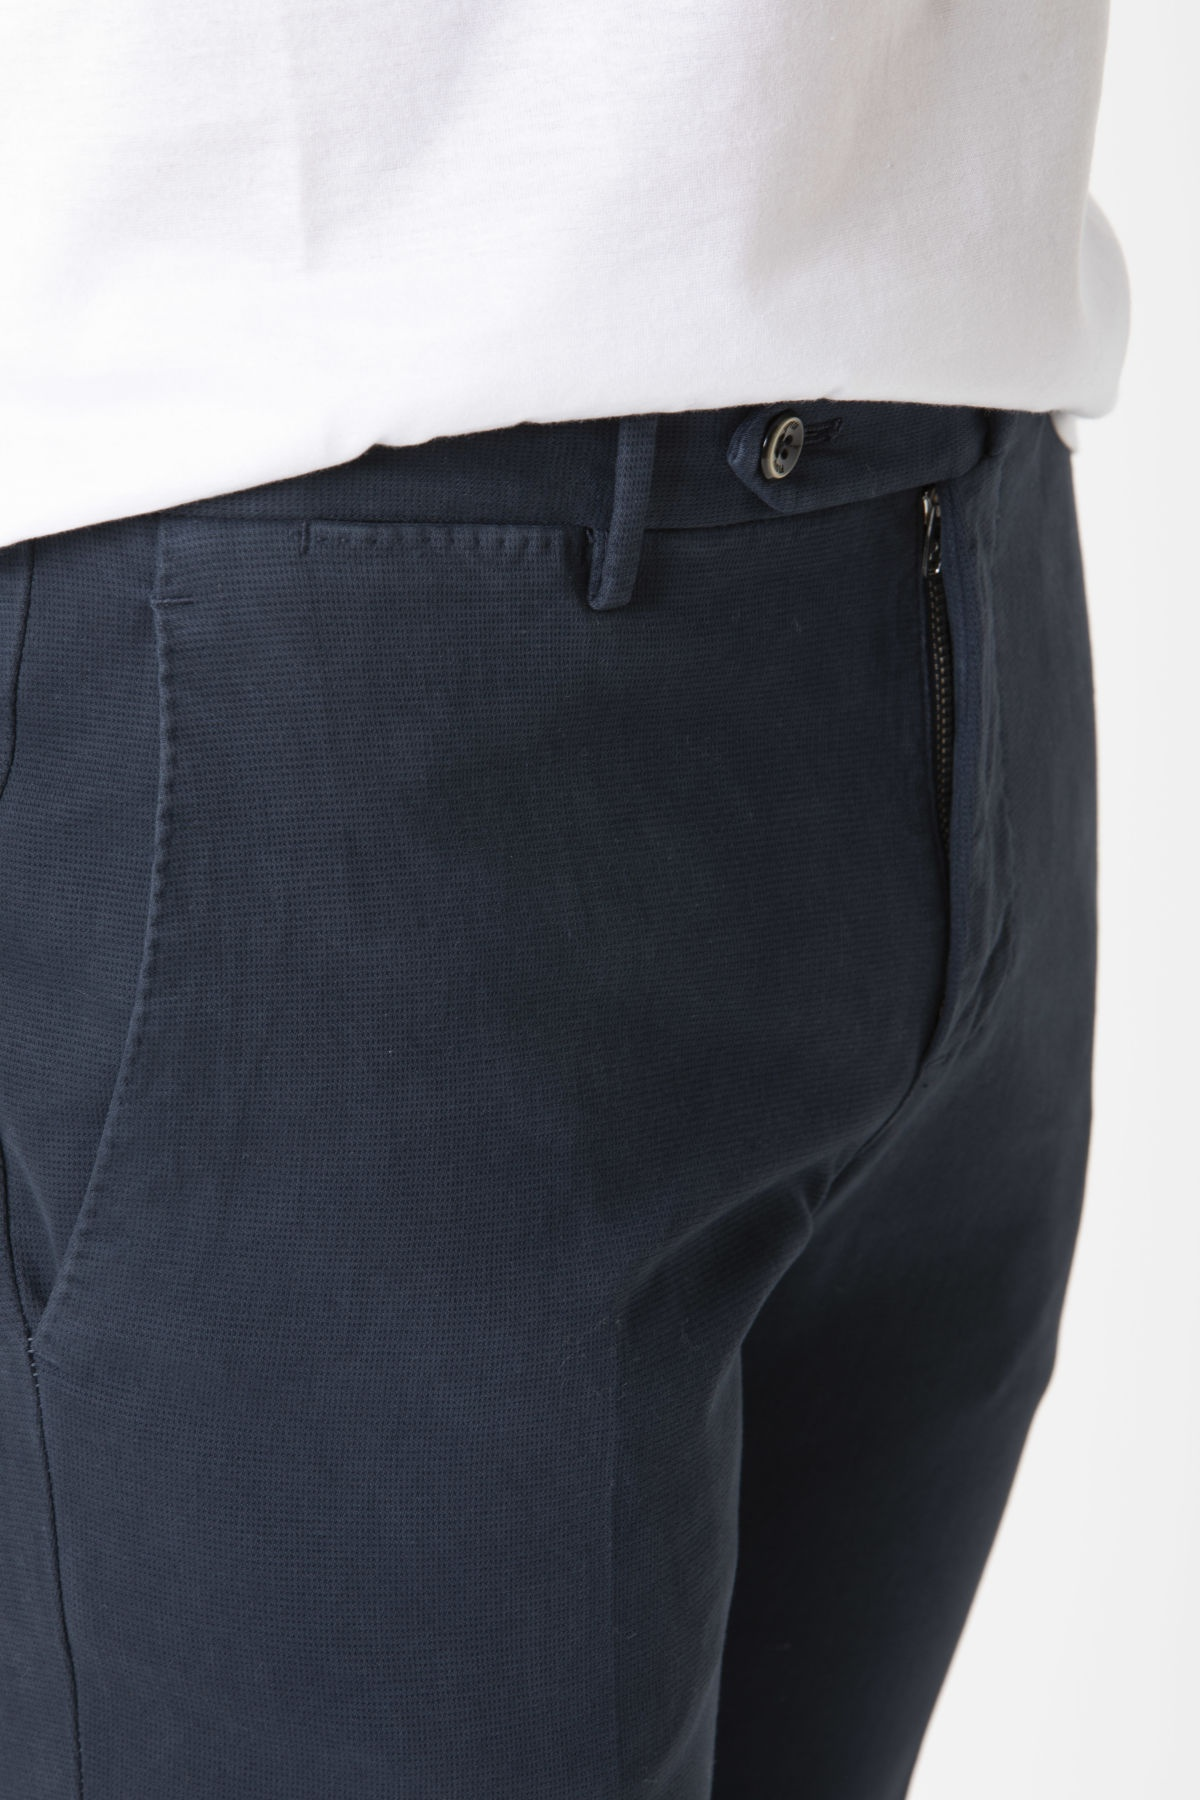 BUSINESS Trousers for man PT01 F/W 19-20